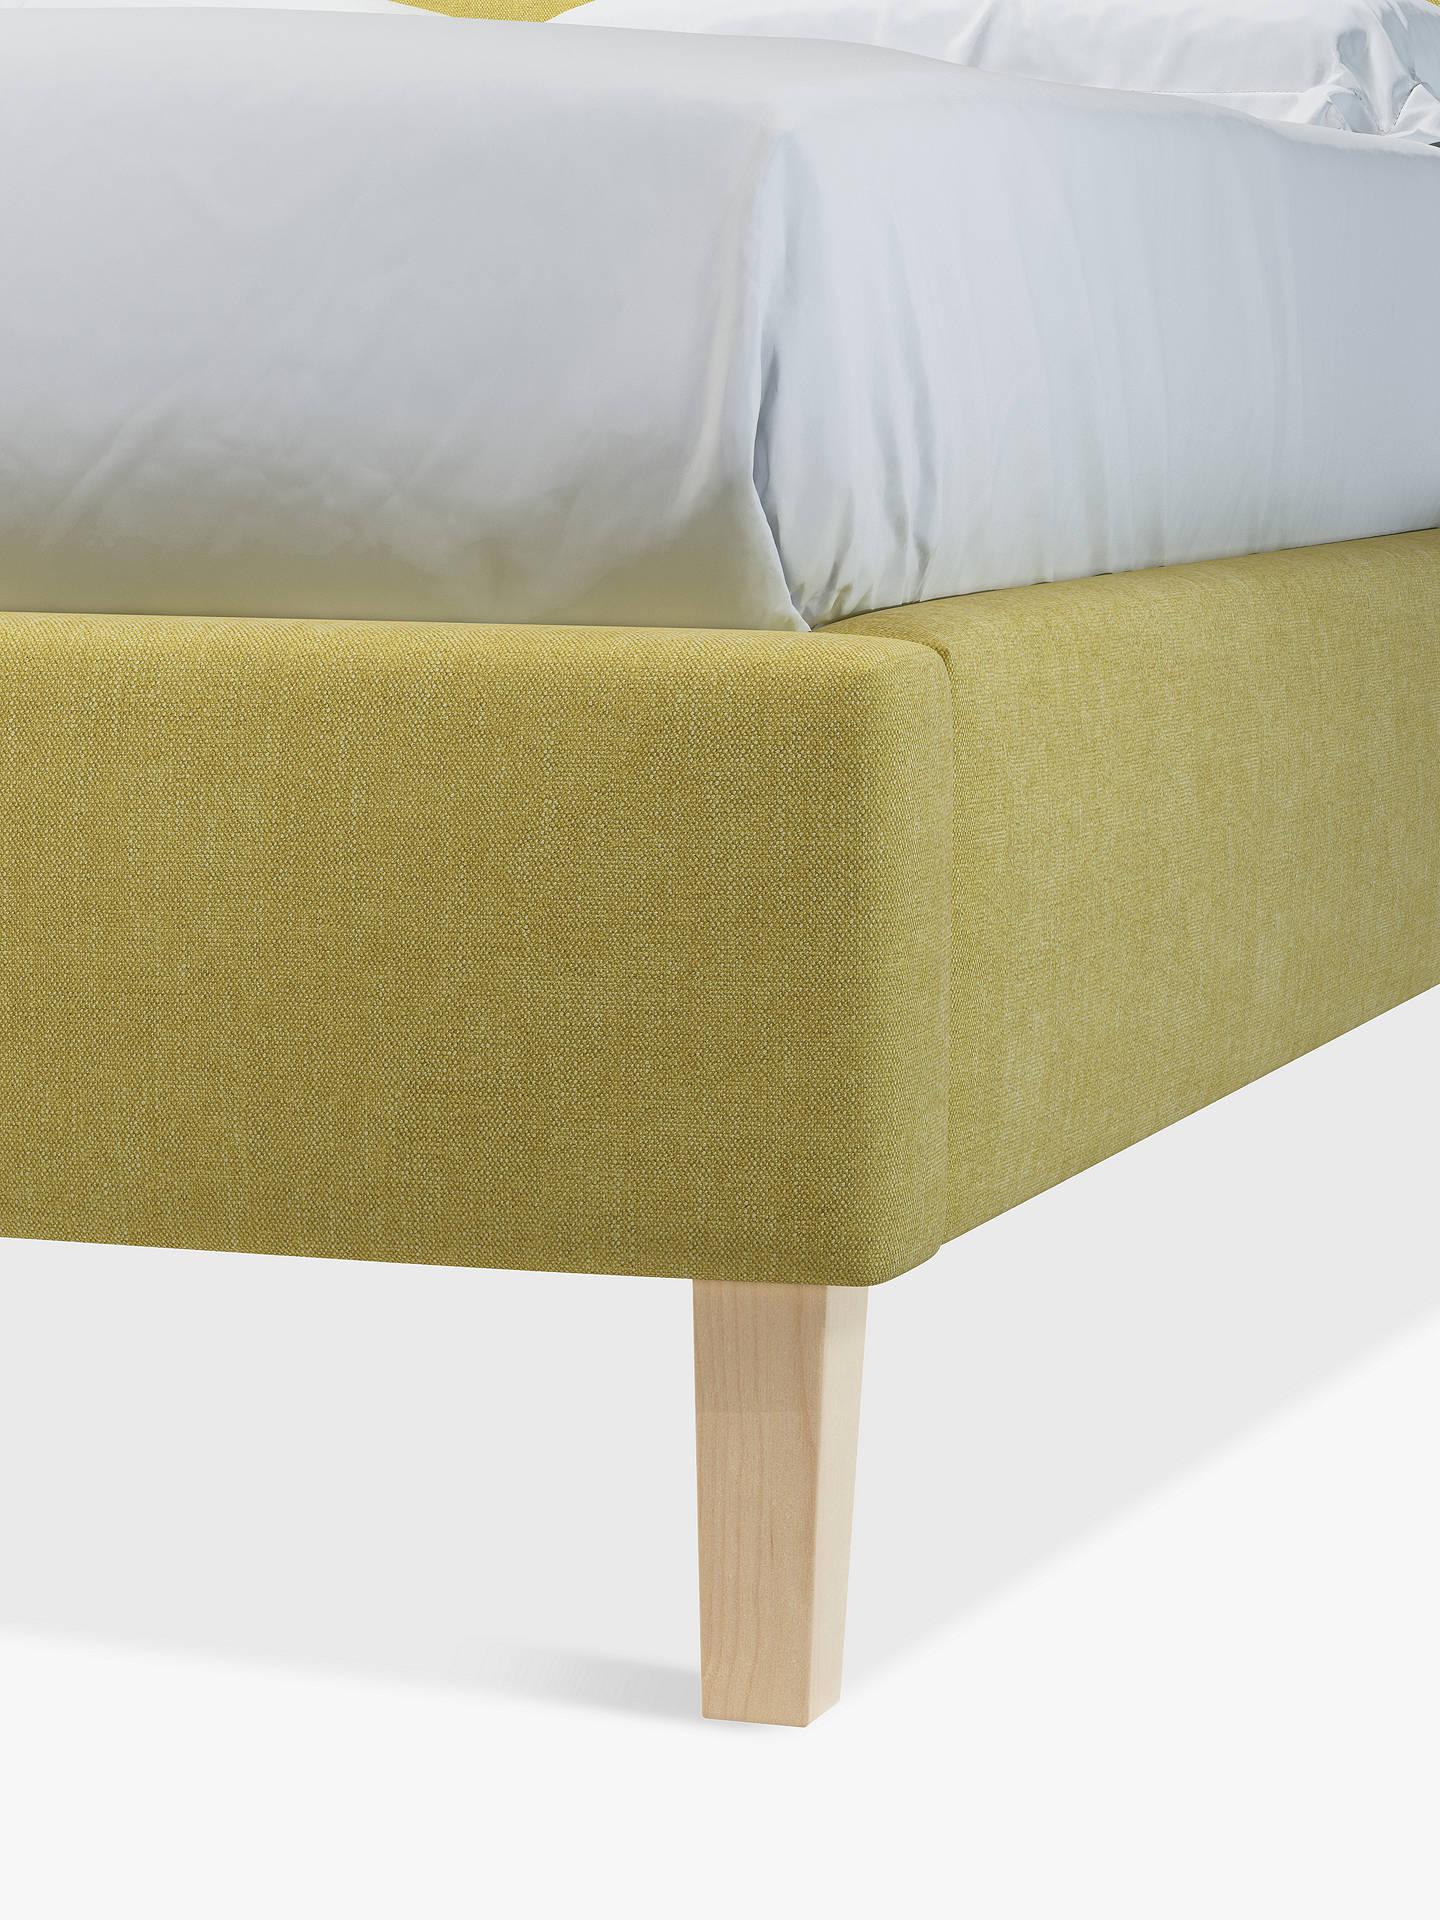 Buy John Lewis & Partners Emily Upholstered Bed Frame, Small Double, Erin Citrine Online at johnlewis.com